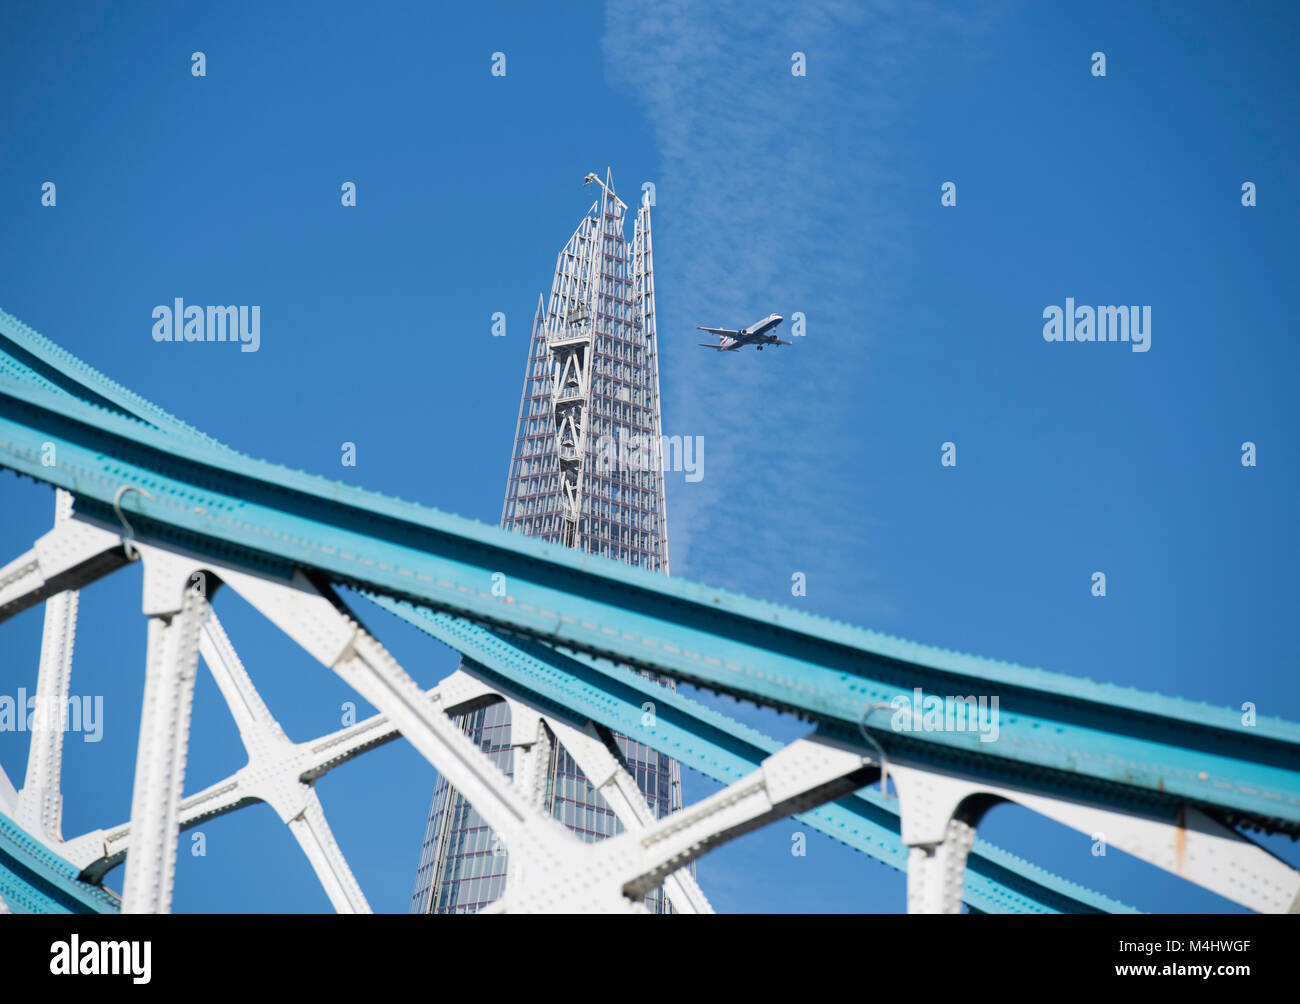 The Shard in London, England, UK, viewed from Tower Bridge with a passenger plane flying nearby - Stock Image